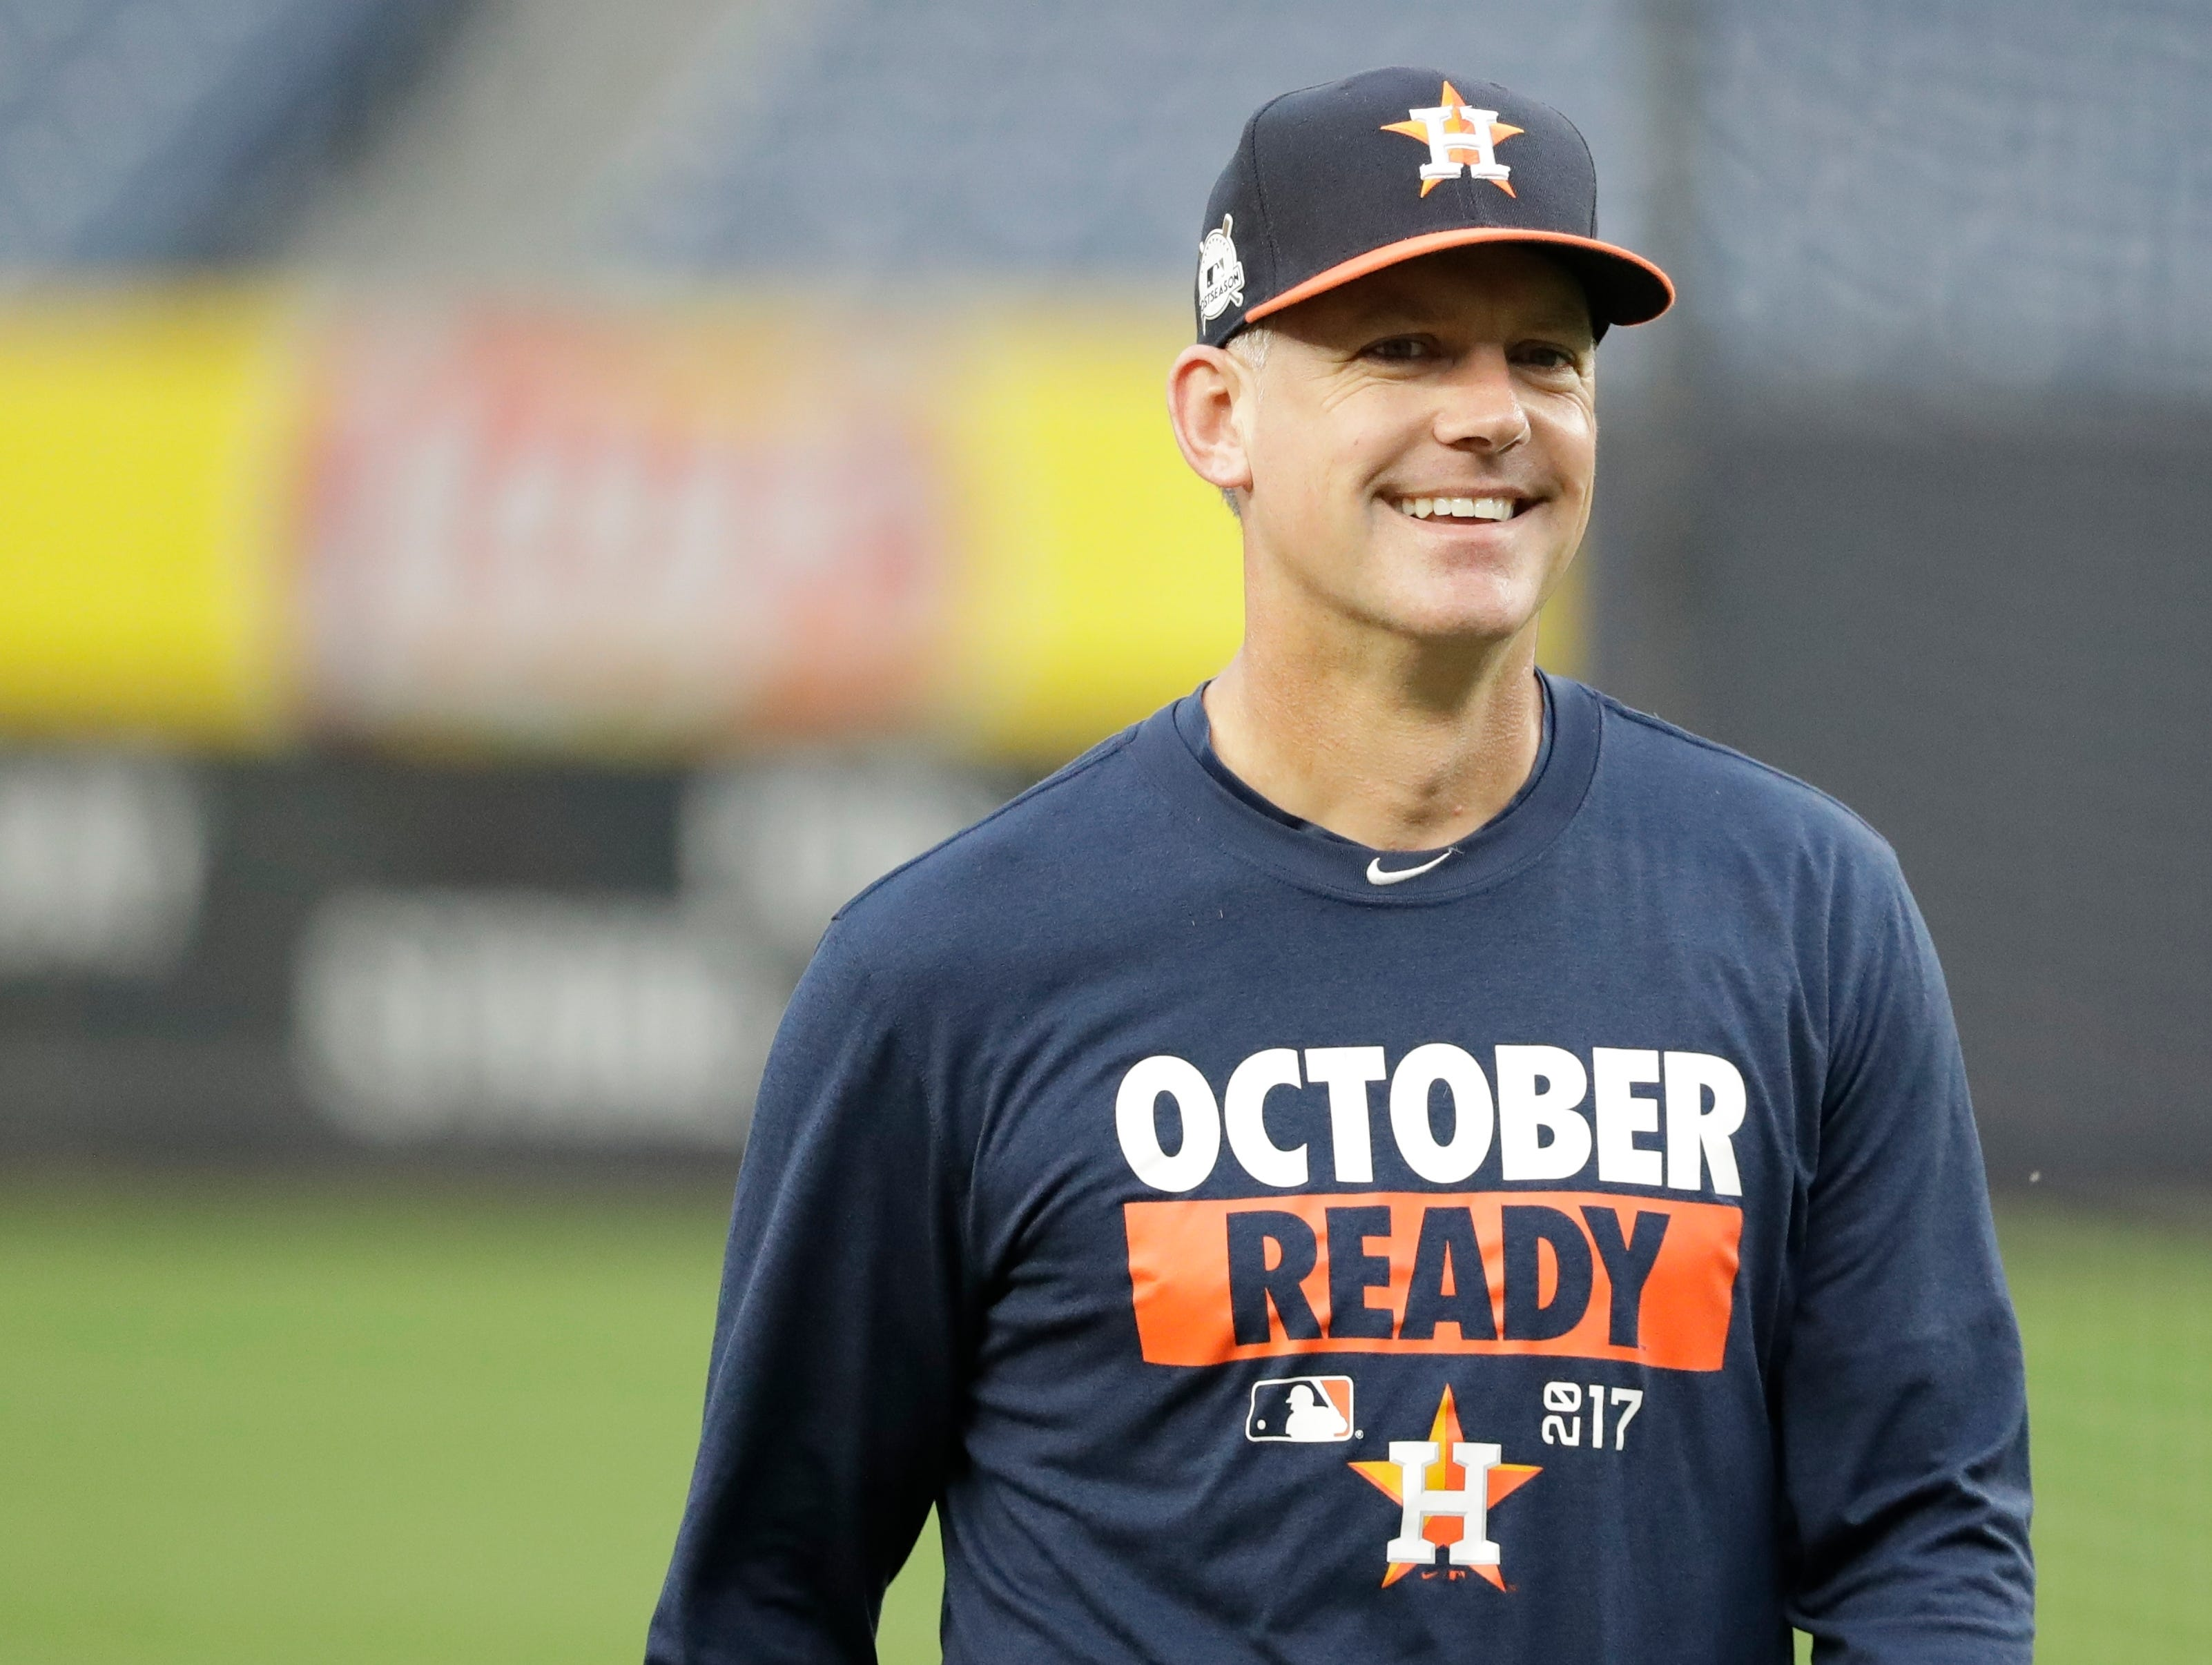 Detroit Tigers hire A.J. Hinch as new manager